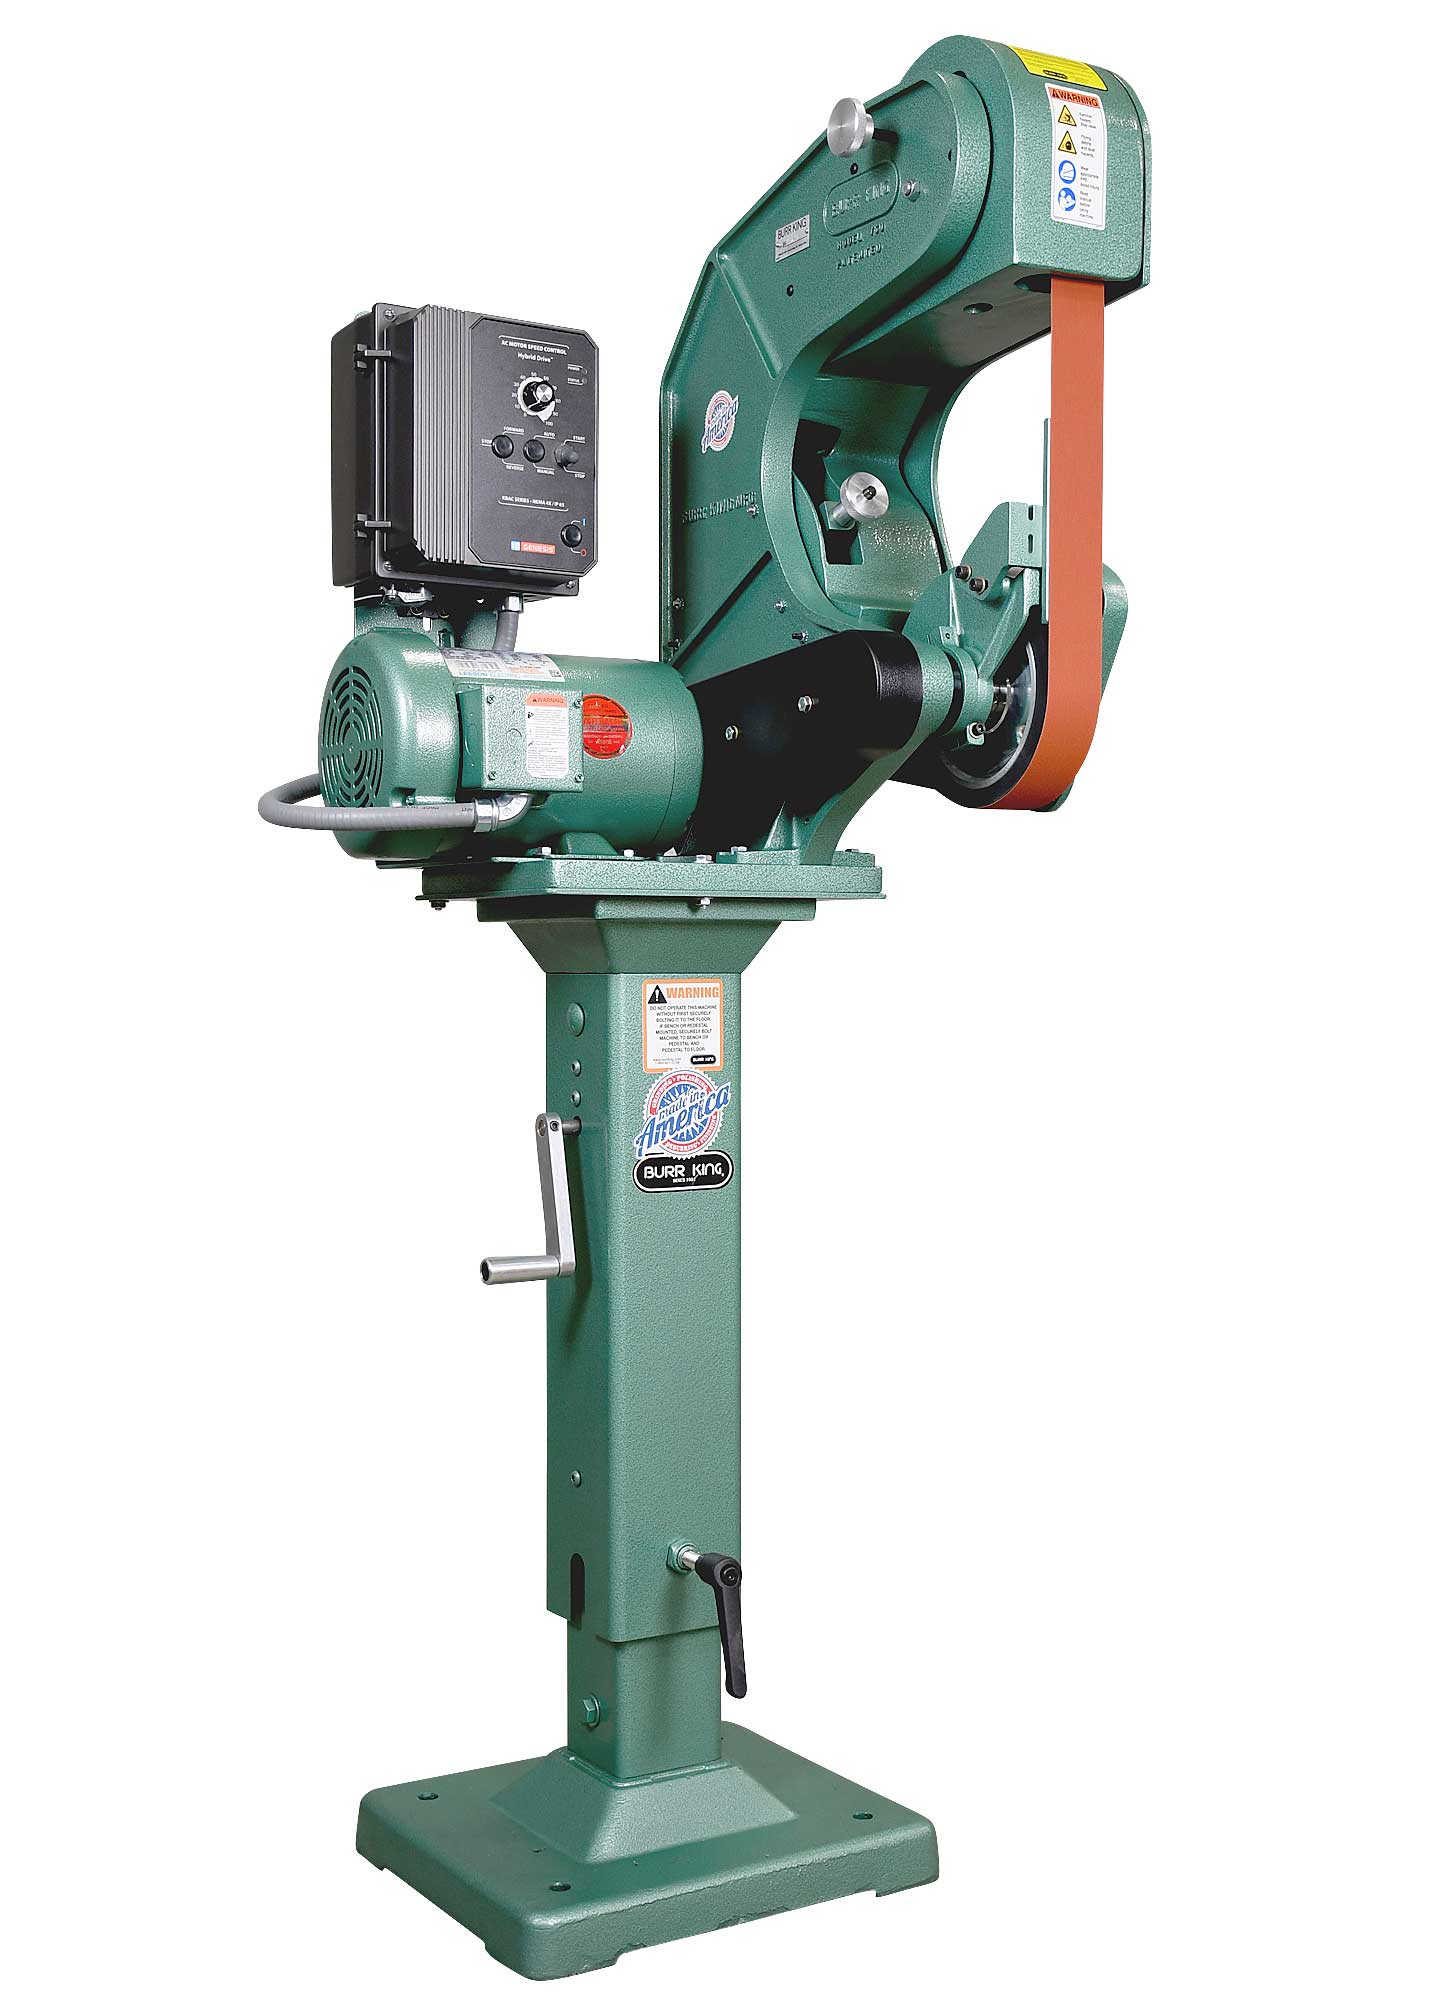 77210 shown with optional adjustable pedestal (01-10)